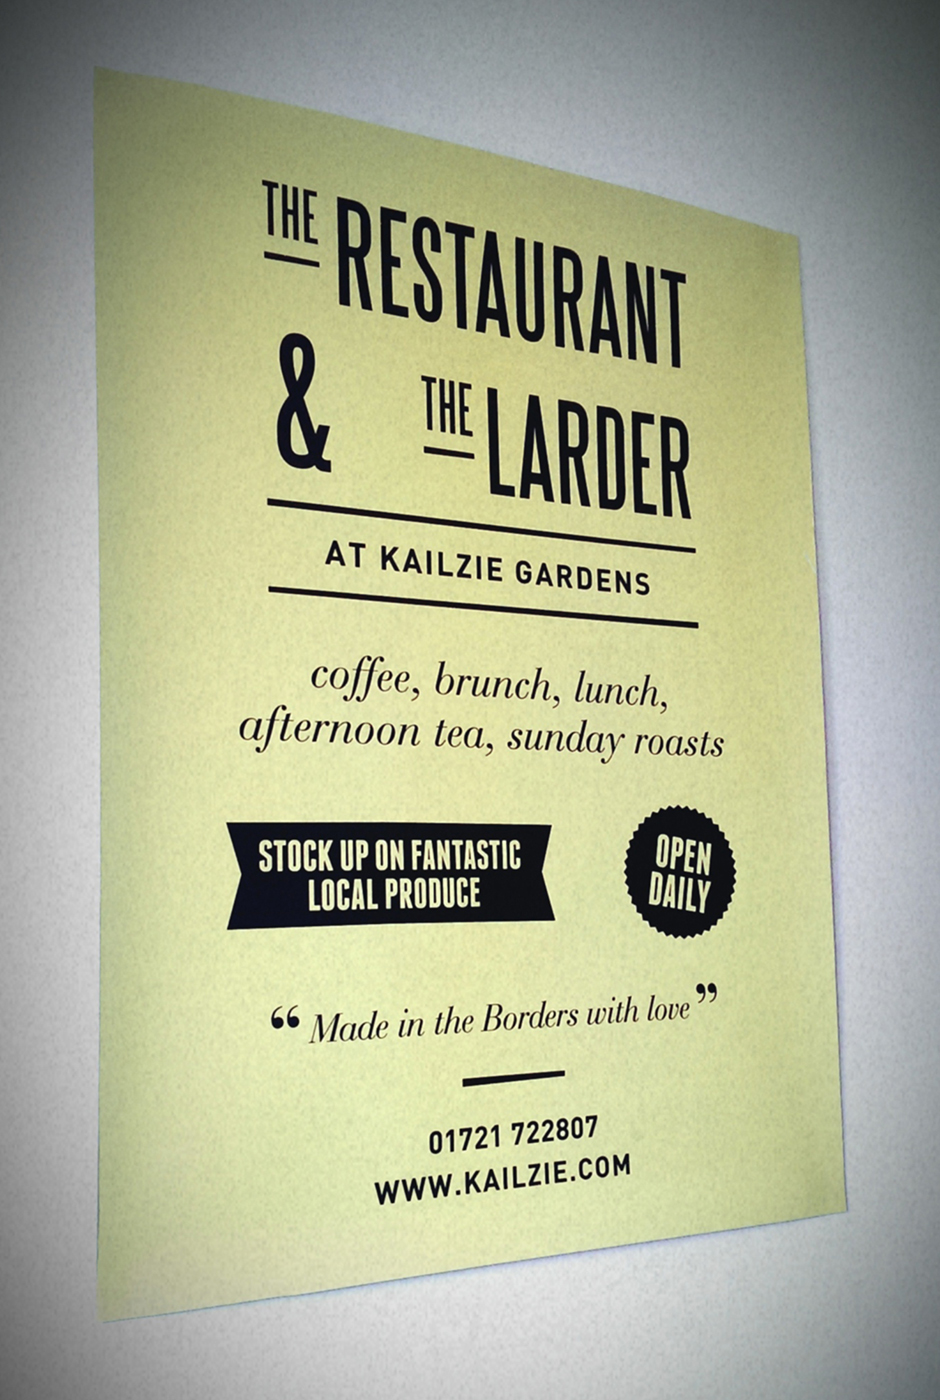 The Restaurant & The Larder - A2 poster design